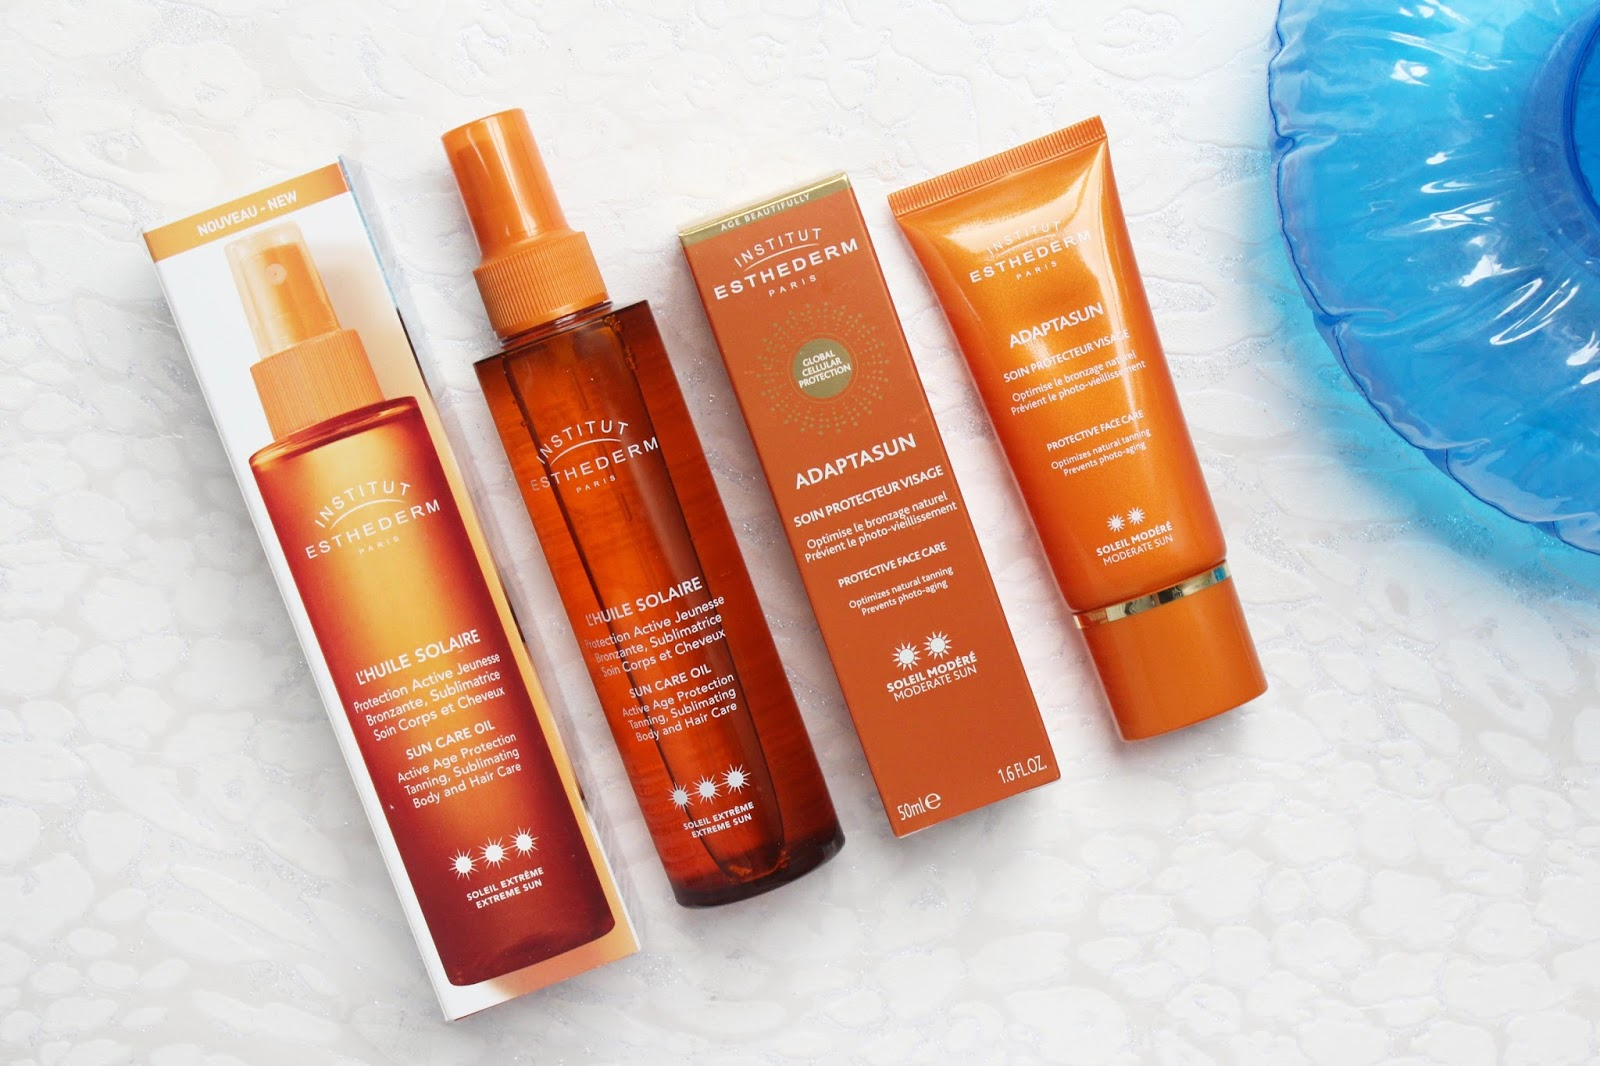 Institut Esthederm Summer Favourites